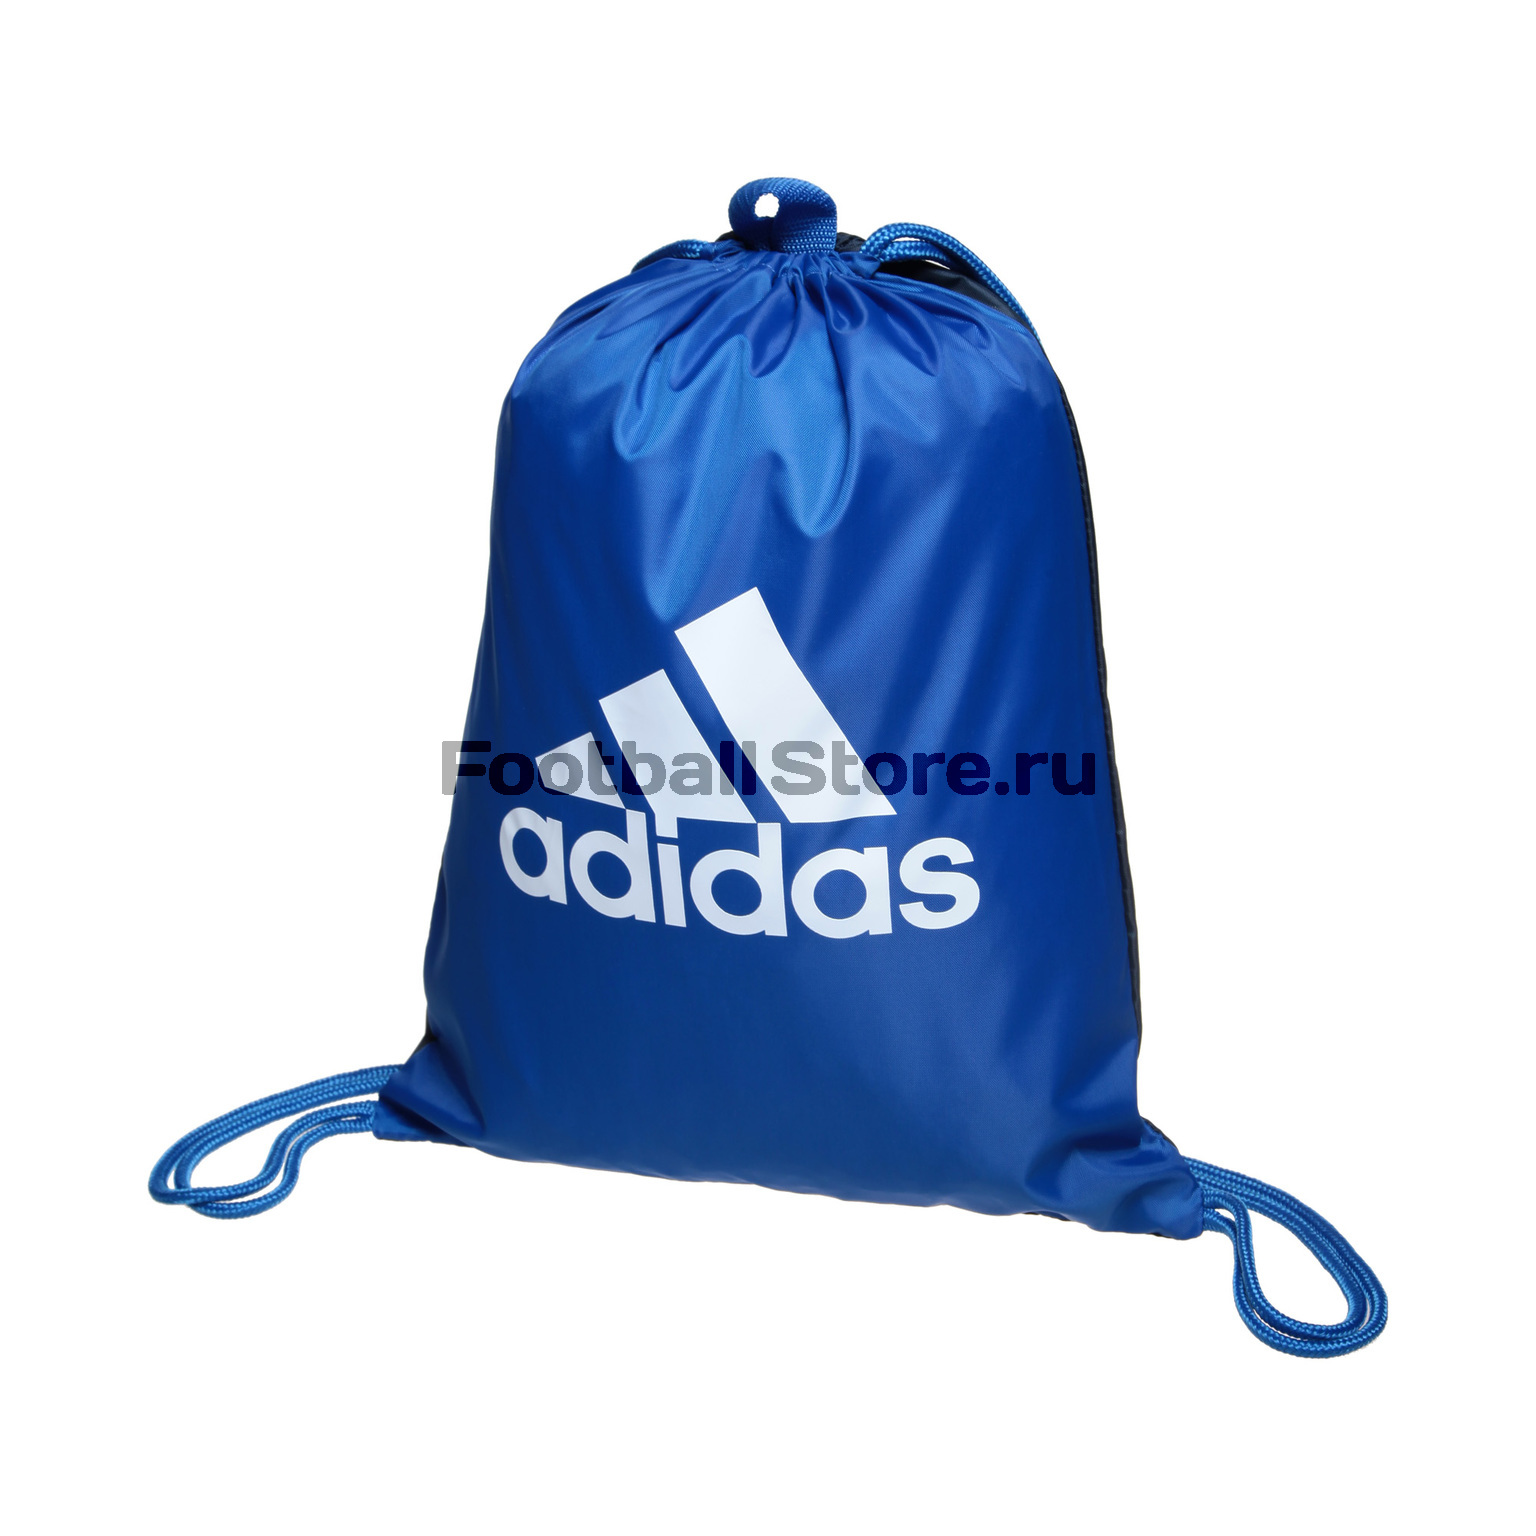 Сумка для обуви Adidas Tiro GB BS4763 сумка adidas tiro tb m b46127